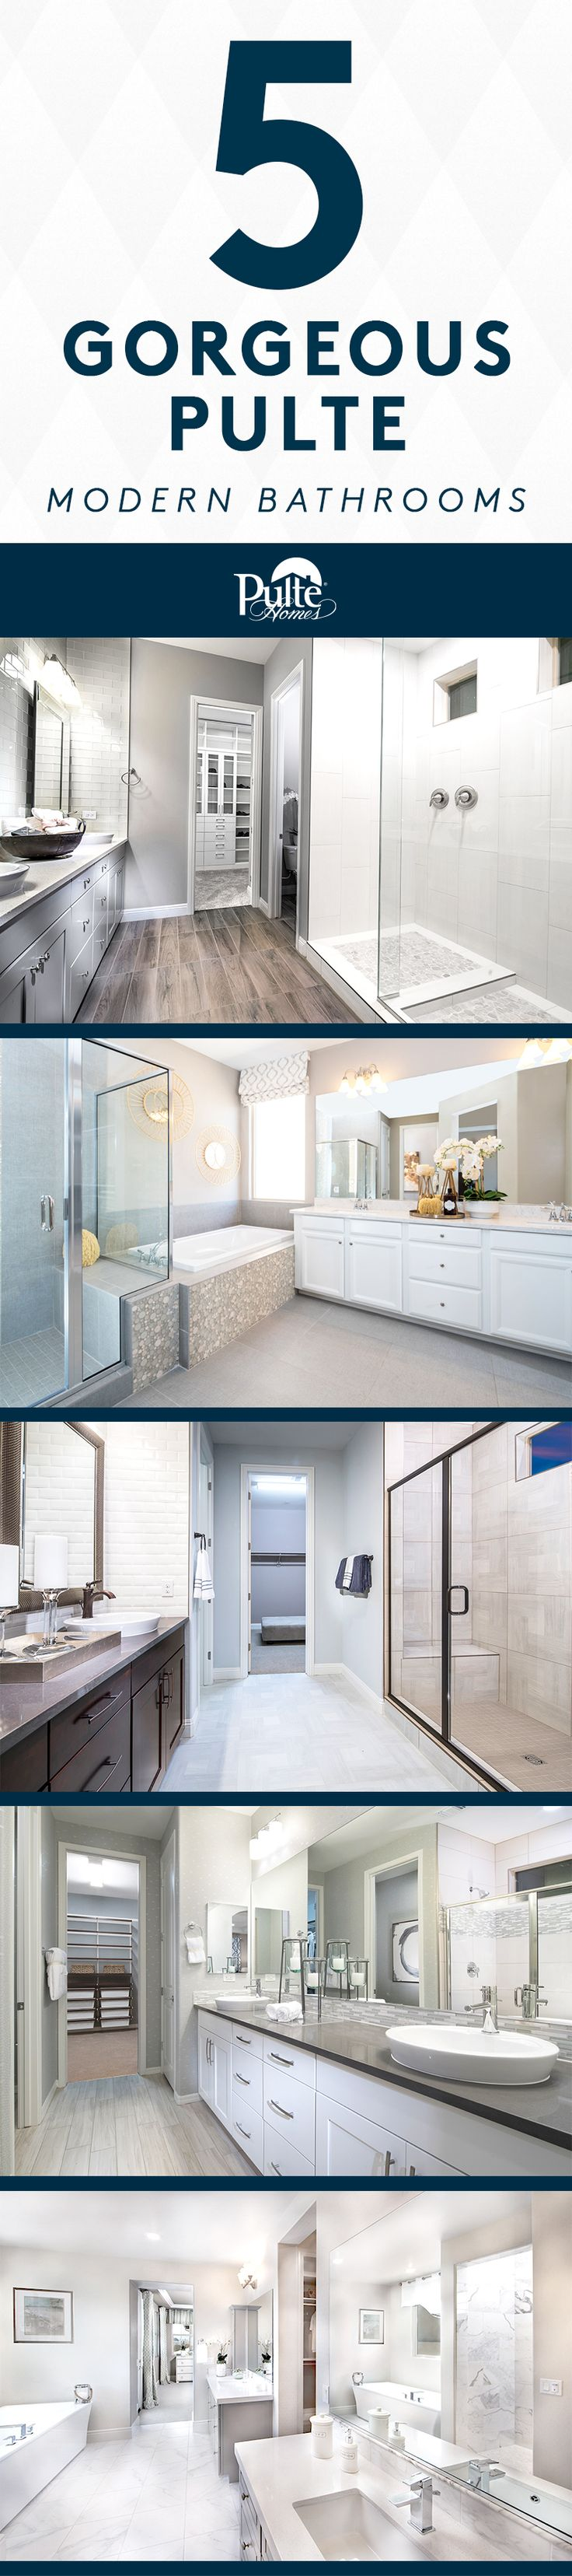 79 best Masterful Bathrooms images on Pinterest